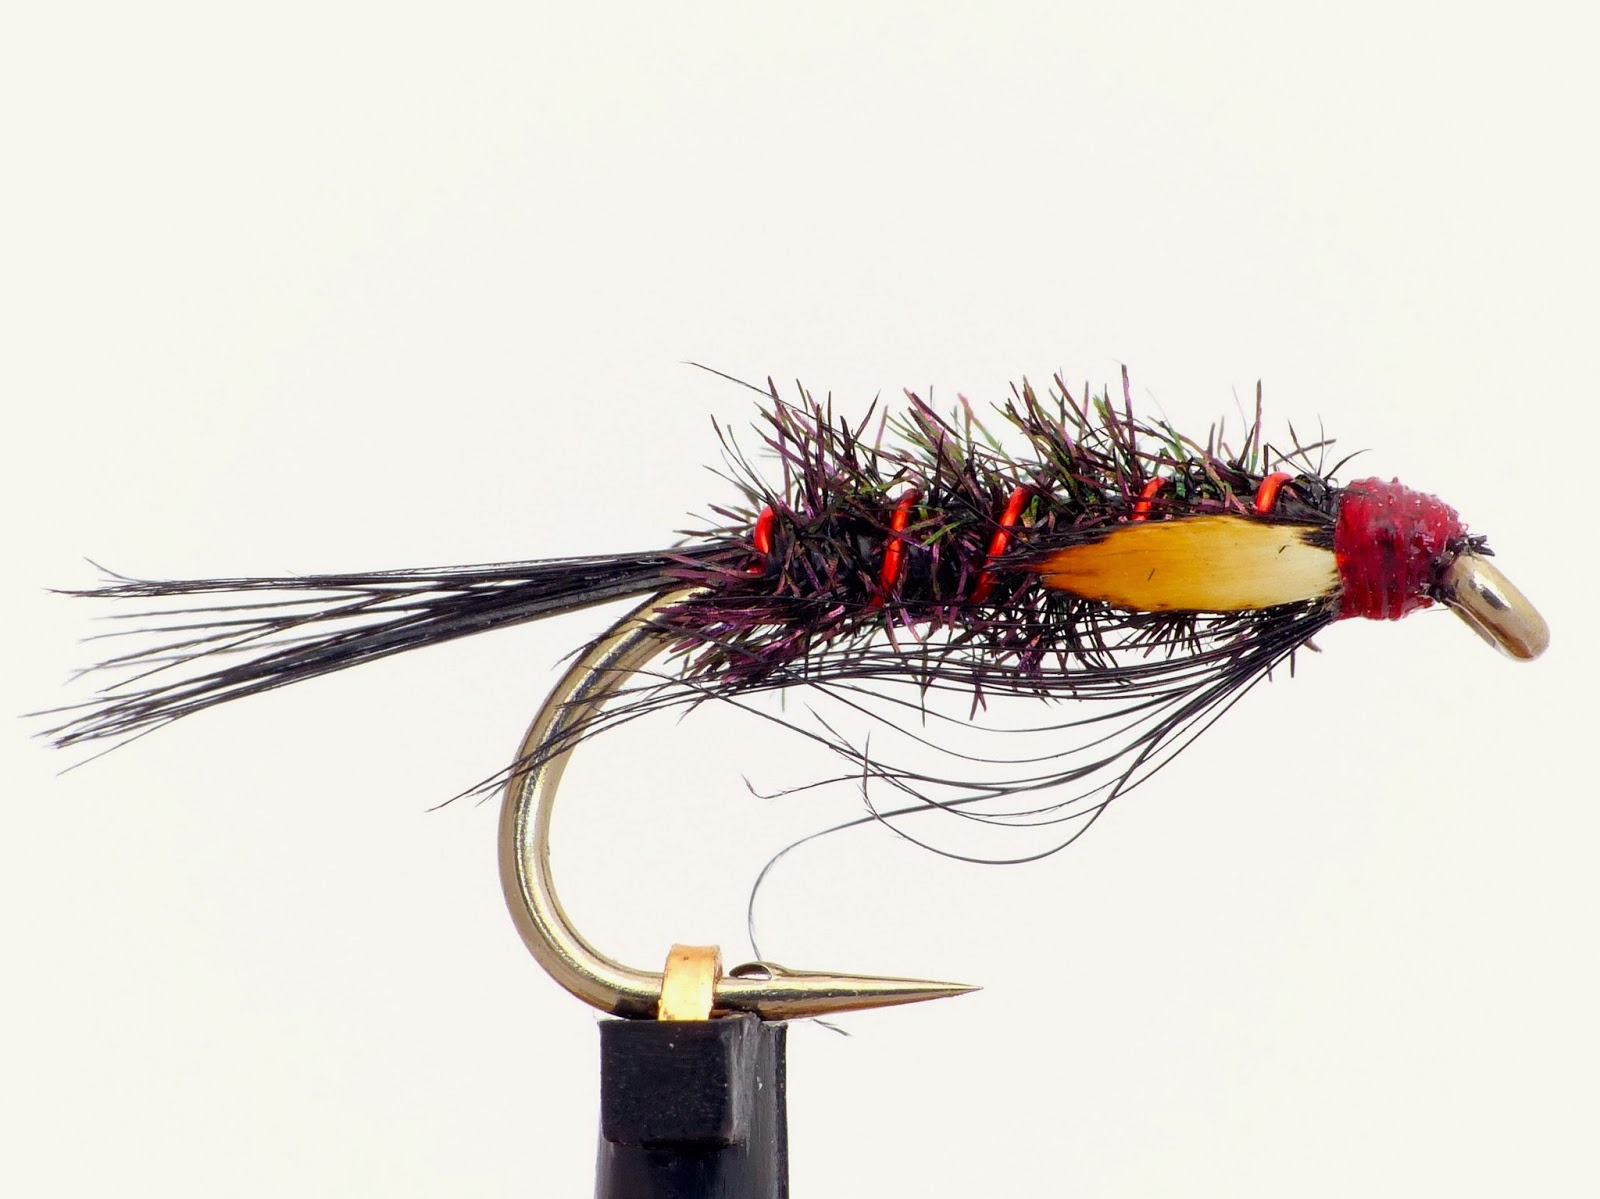 Black Diawl Bach with red rib